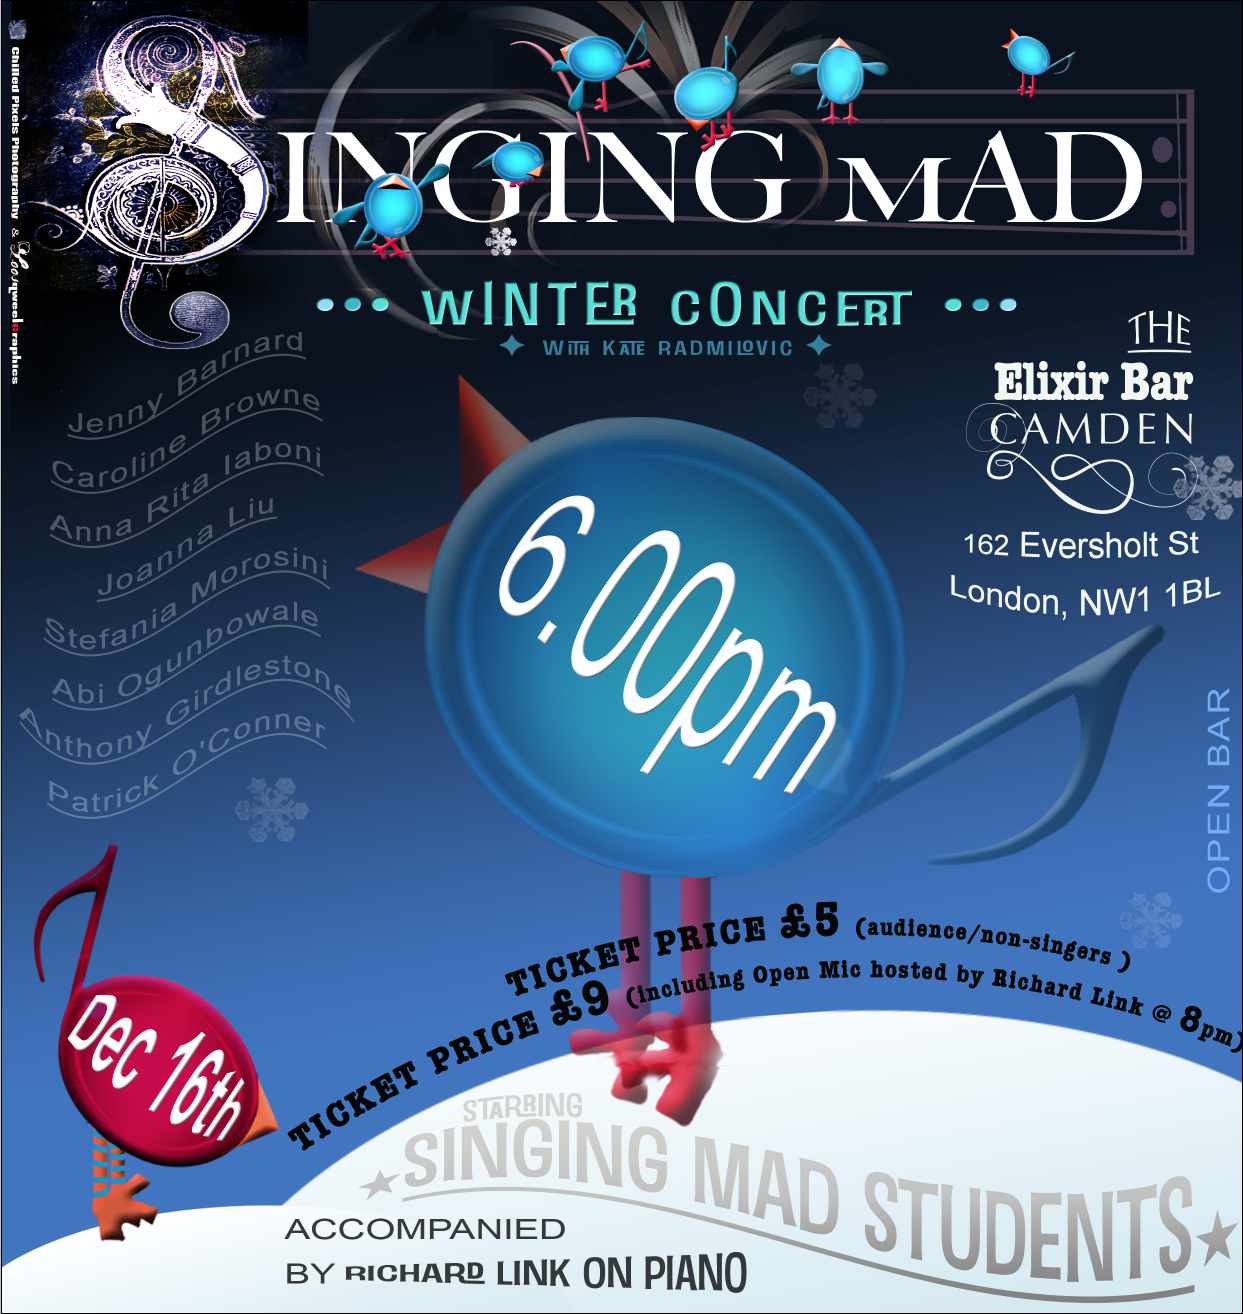 Poster for Singing Mad